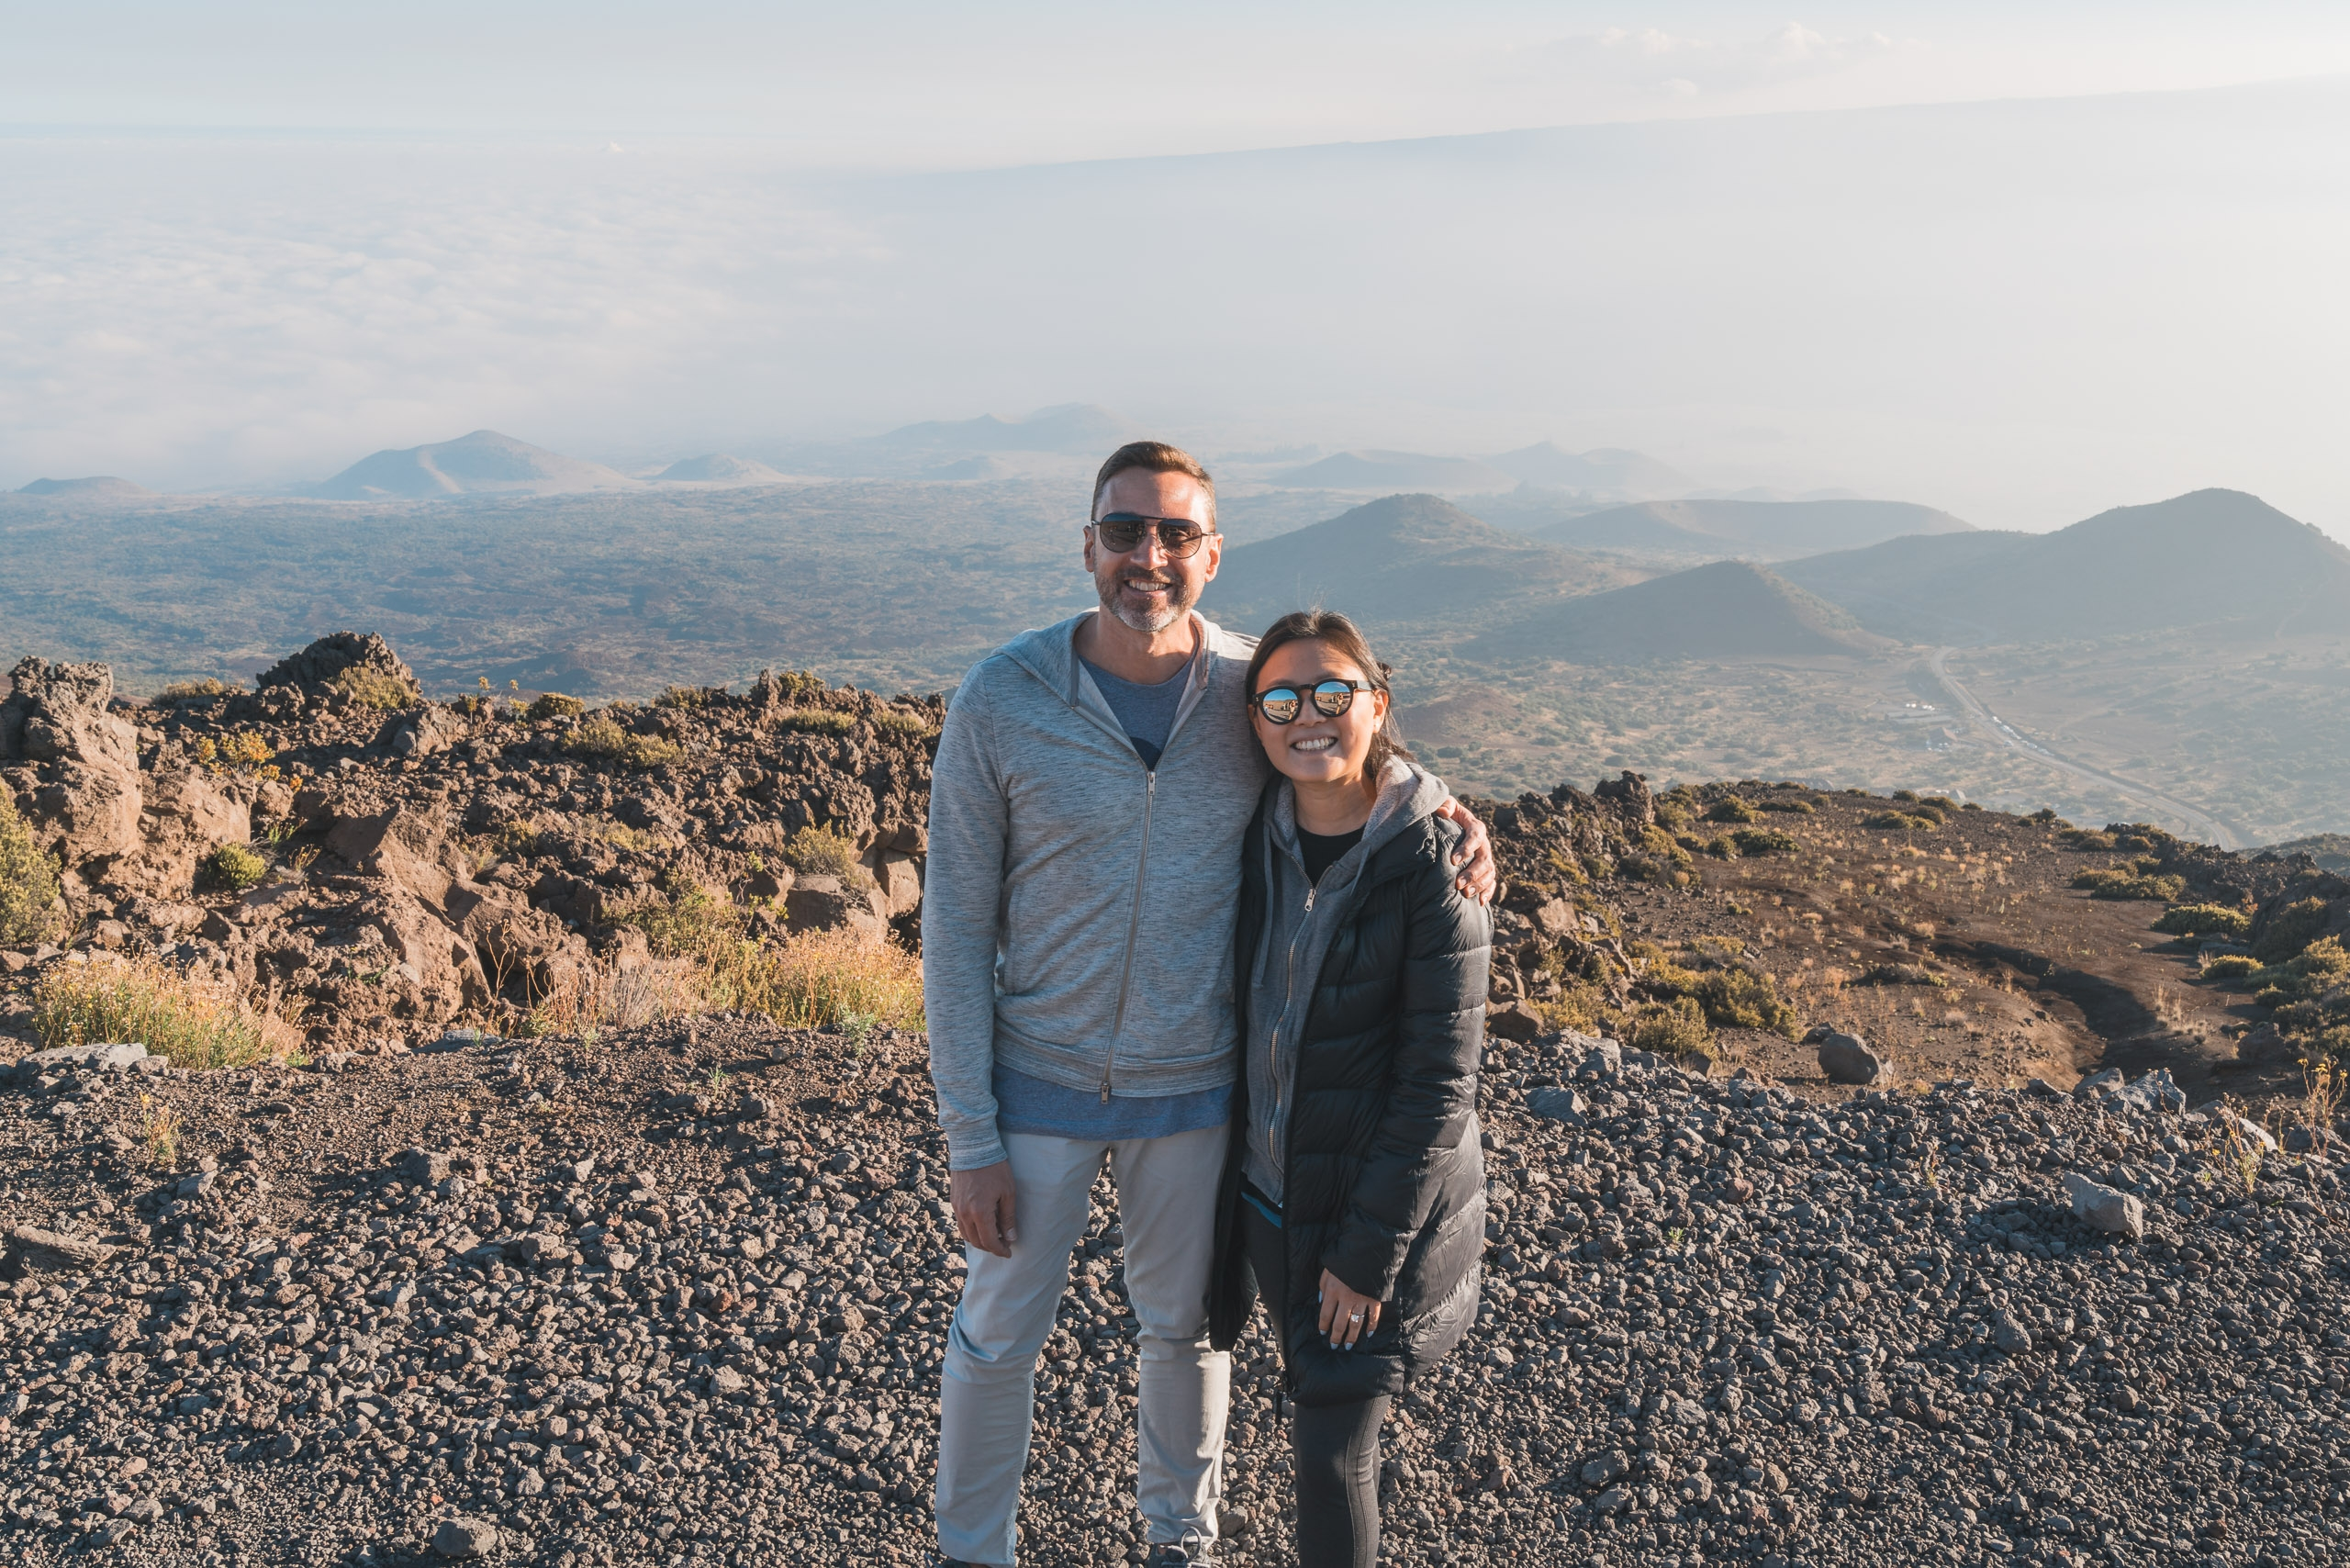 Near the Top of Mauna Kea